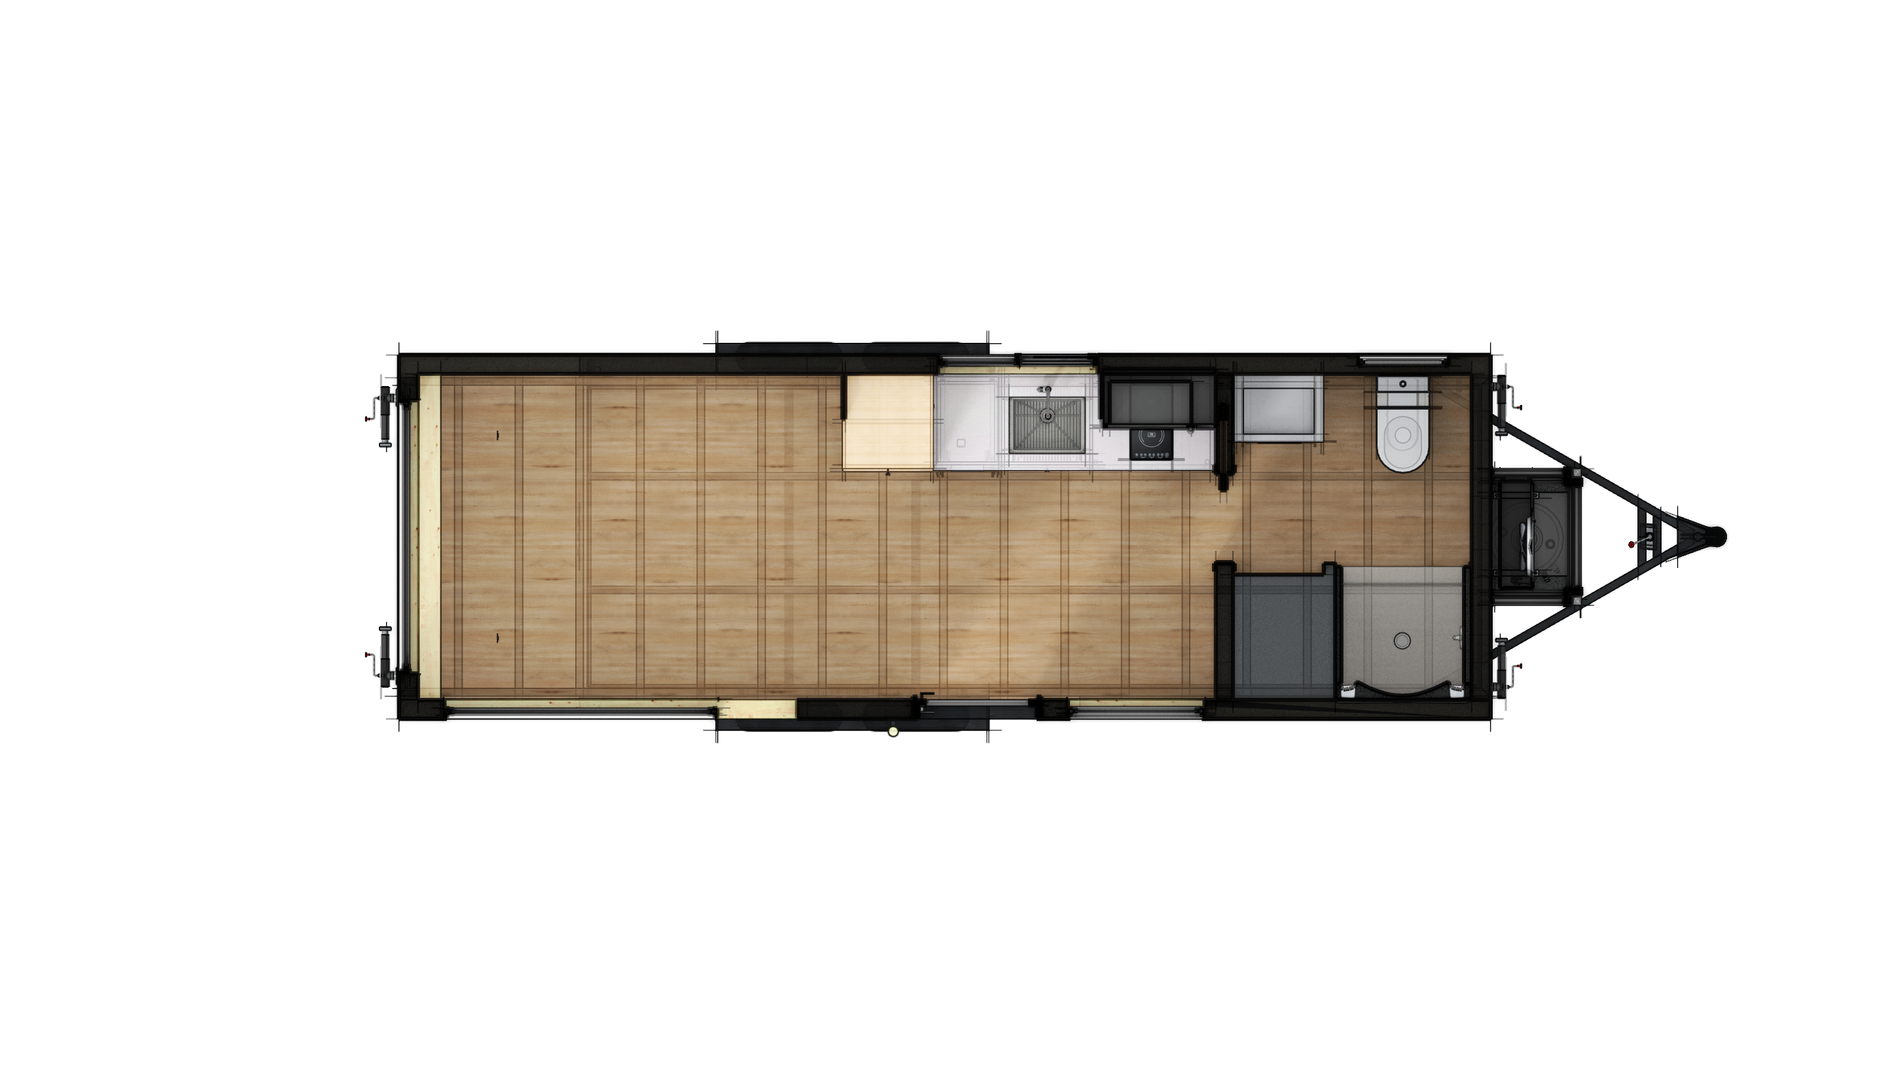 Studio 24 Floor Plan